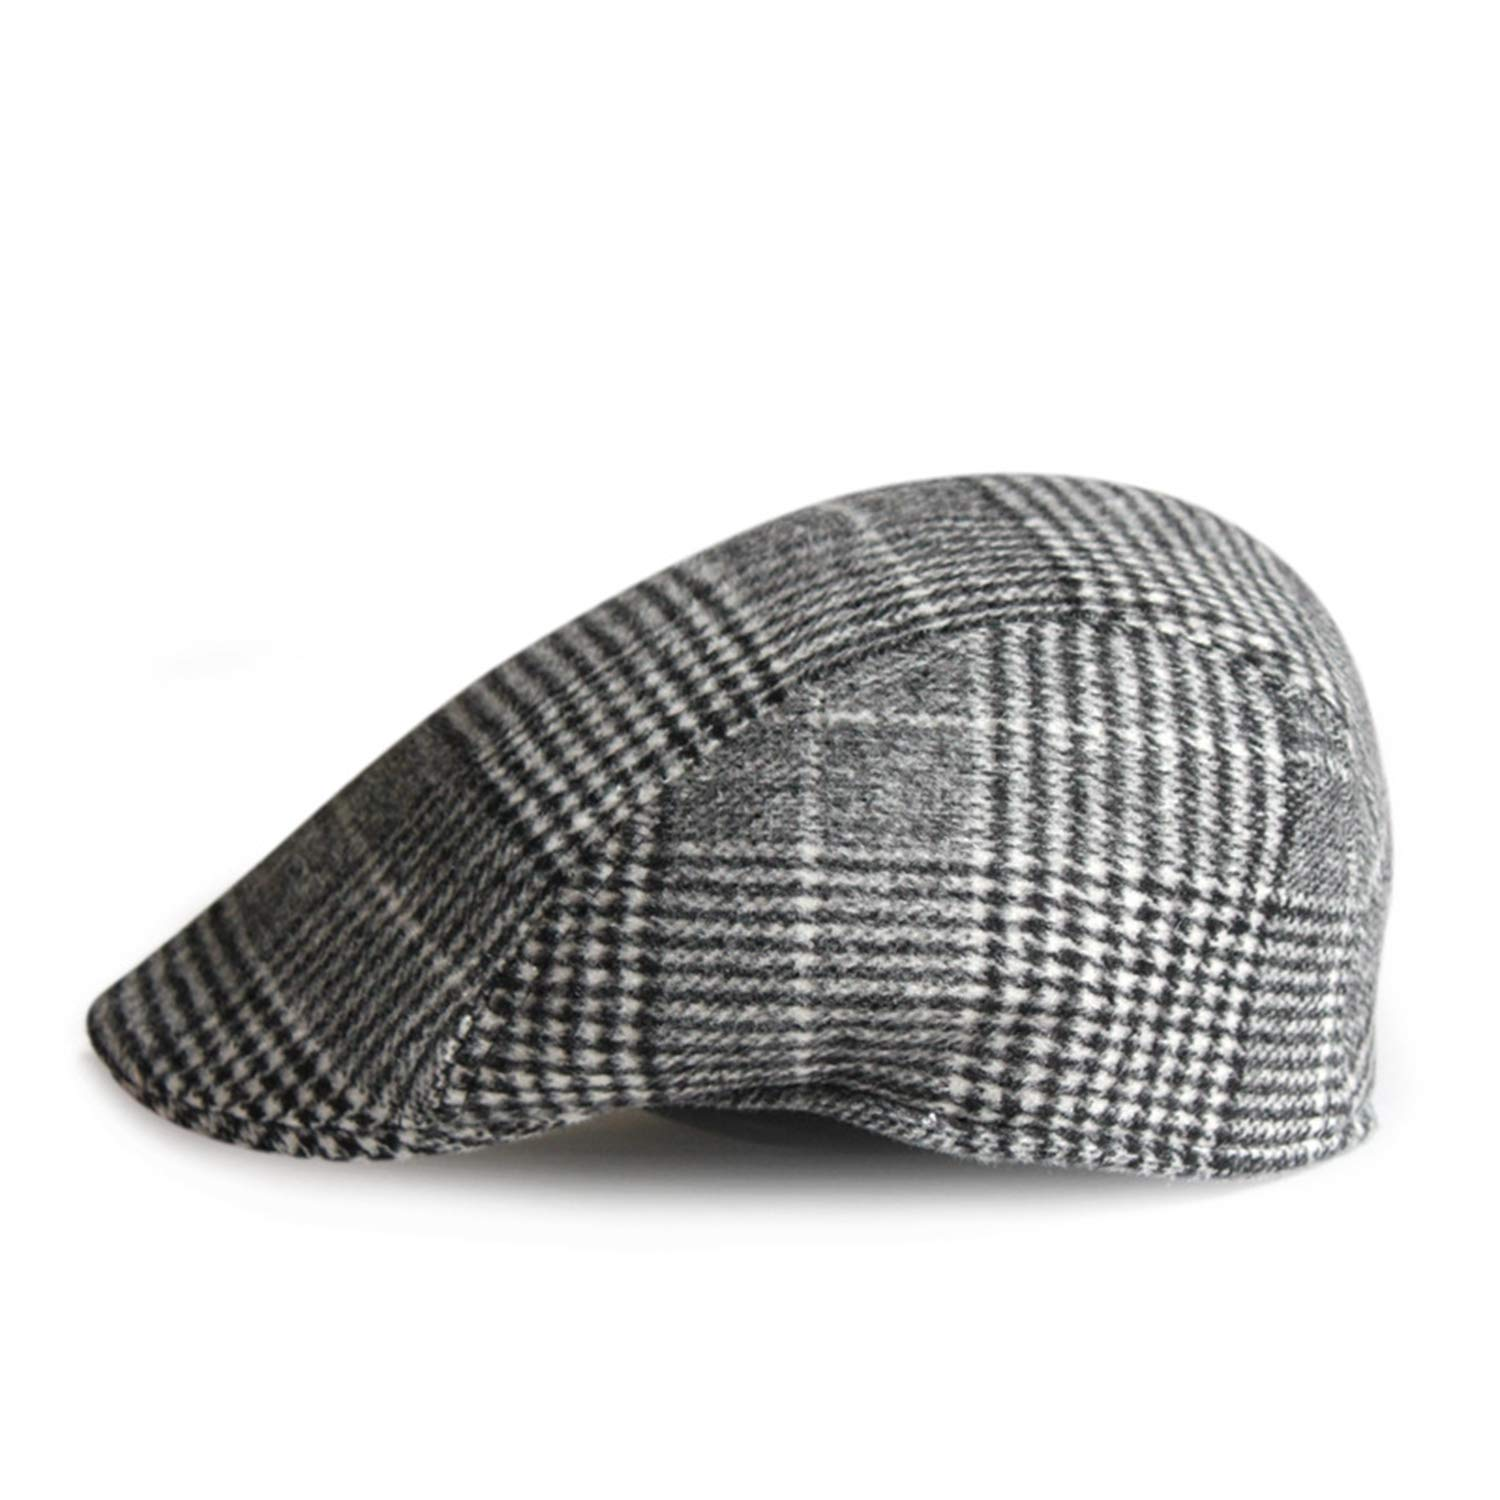 8a740faa8b9 French Hats for Men Women Wool Tweed Cap Vintage Plaid Flat Painters Winter  Autumn Newsboy Beret Houndstooth at Amazon Women s Clothing store